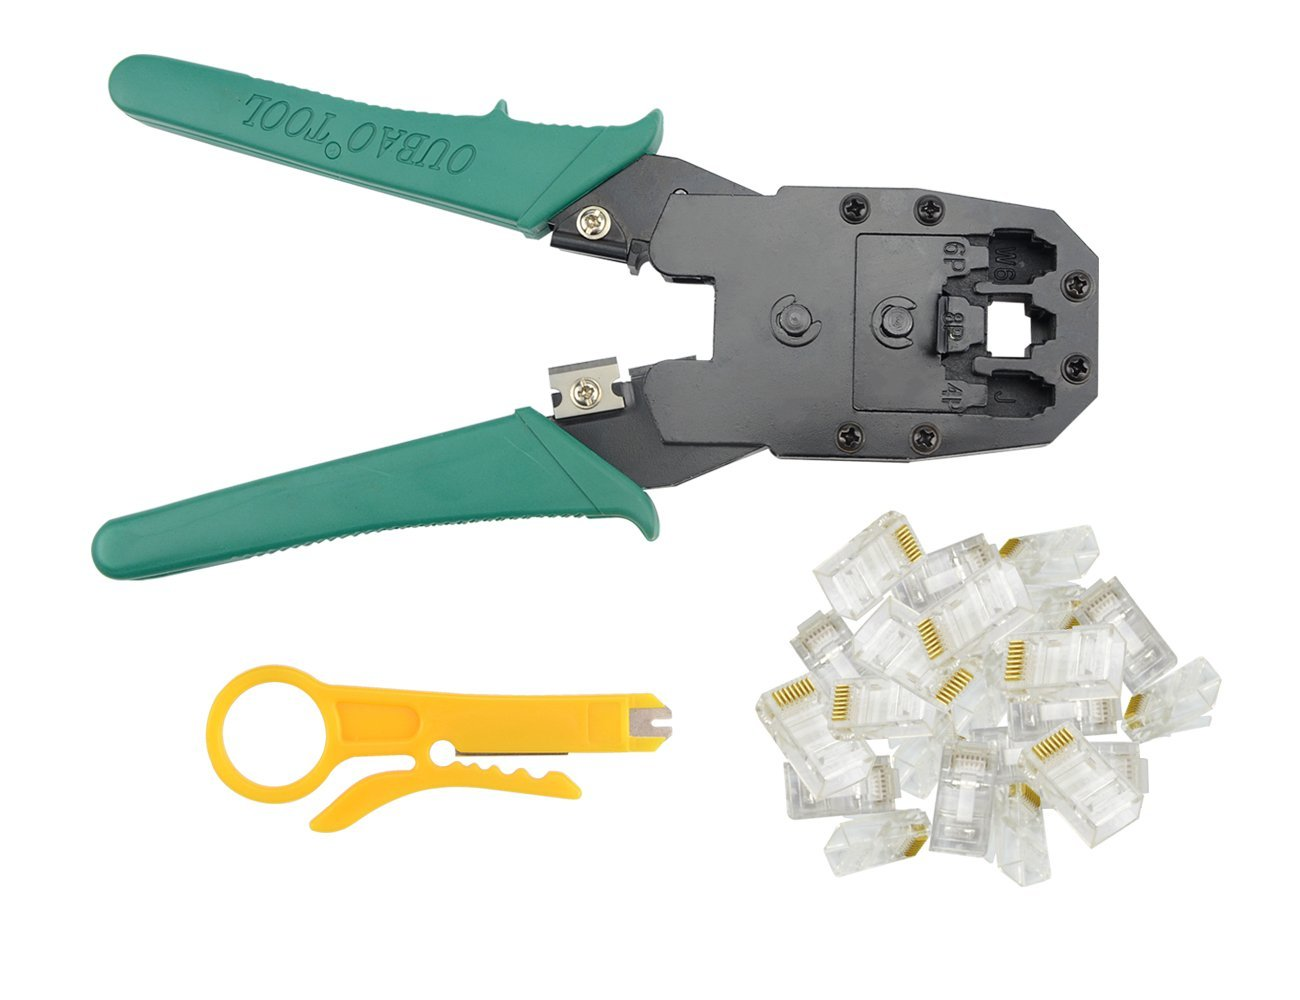 BXQINLENX Professional Multi-function Wire Crimper Telephone Tool Crimps Cable Wire Stripper Wire Crimper And Cuter For 8P8C RJ-45 6P6C RJ-11 RJ-22 4P4C (Crimper + 100PCS RJ45 8P8C CONNECTOR)